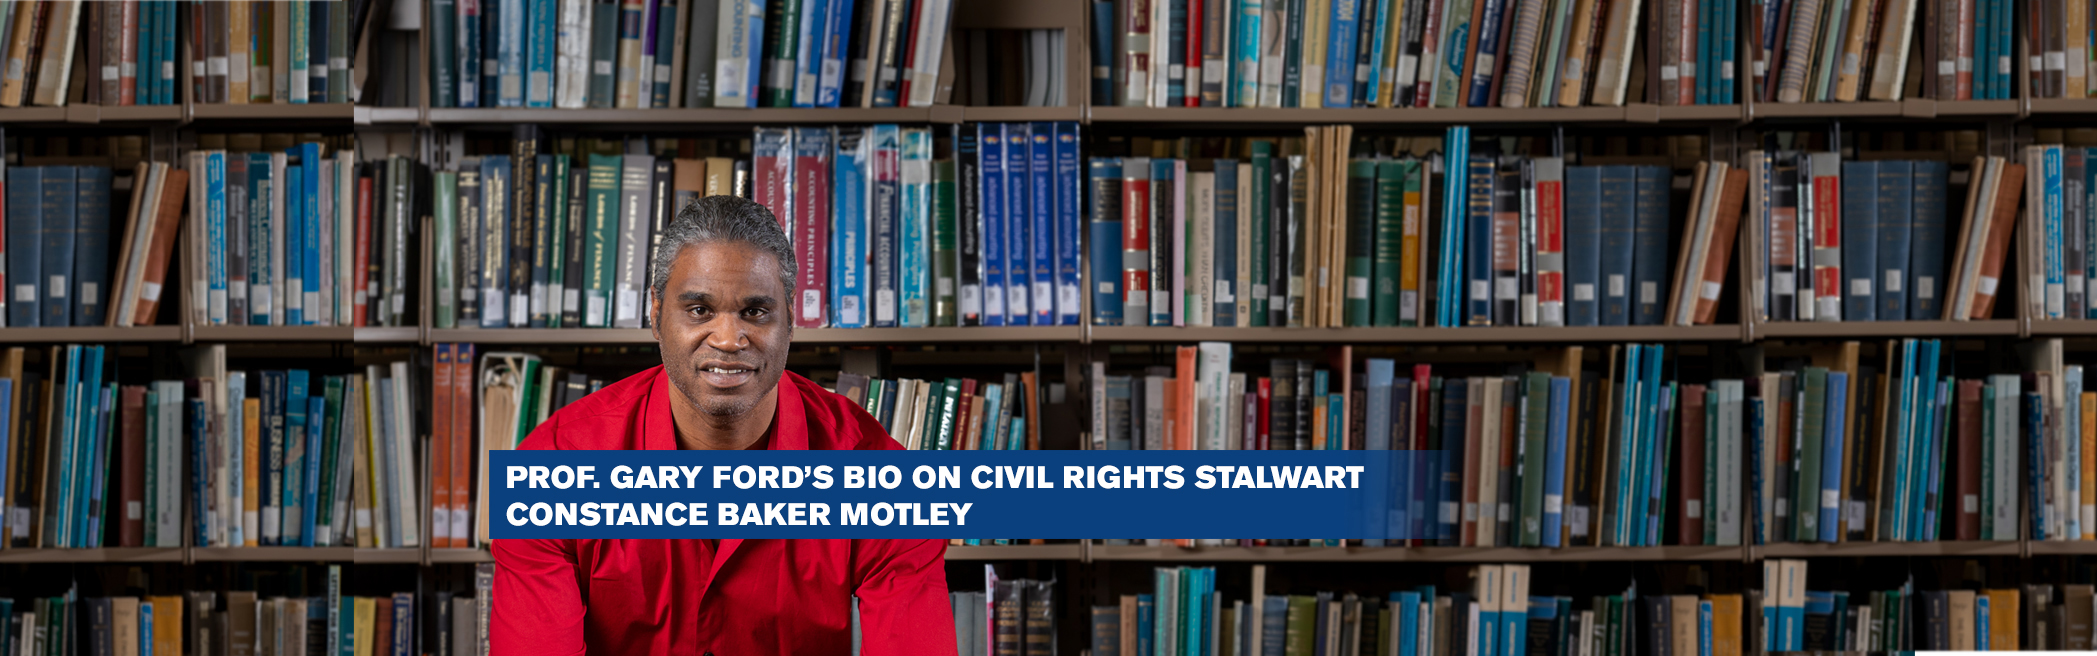 Prof. Gary Ford's Bio on Civil Rights Stalwart Constance Baker Motley